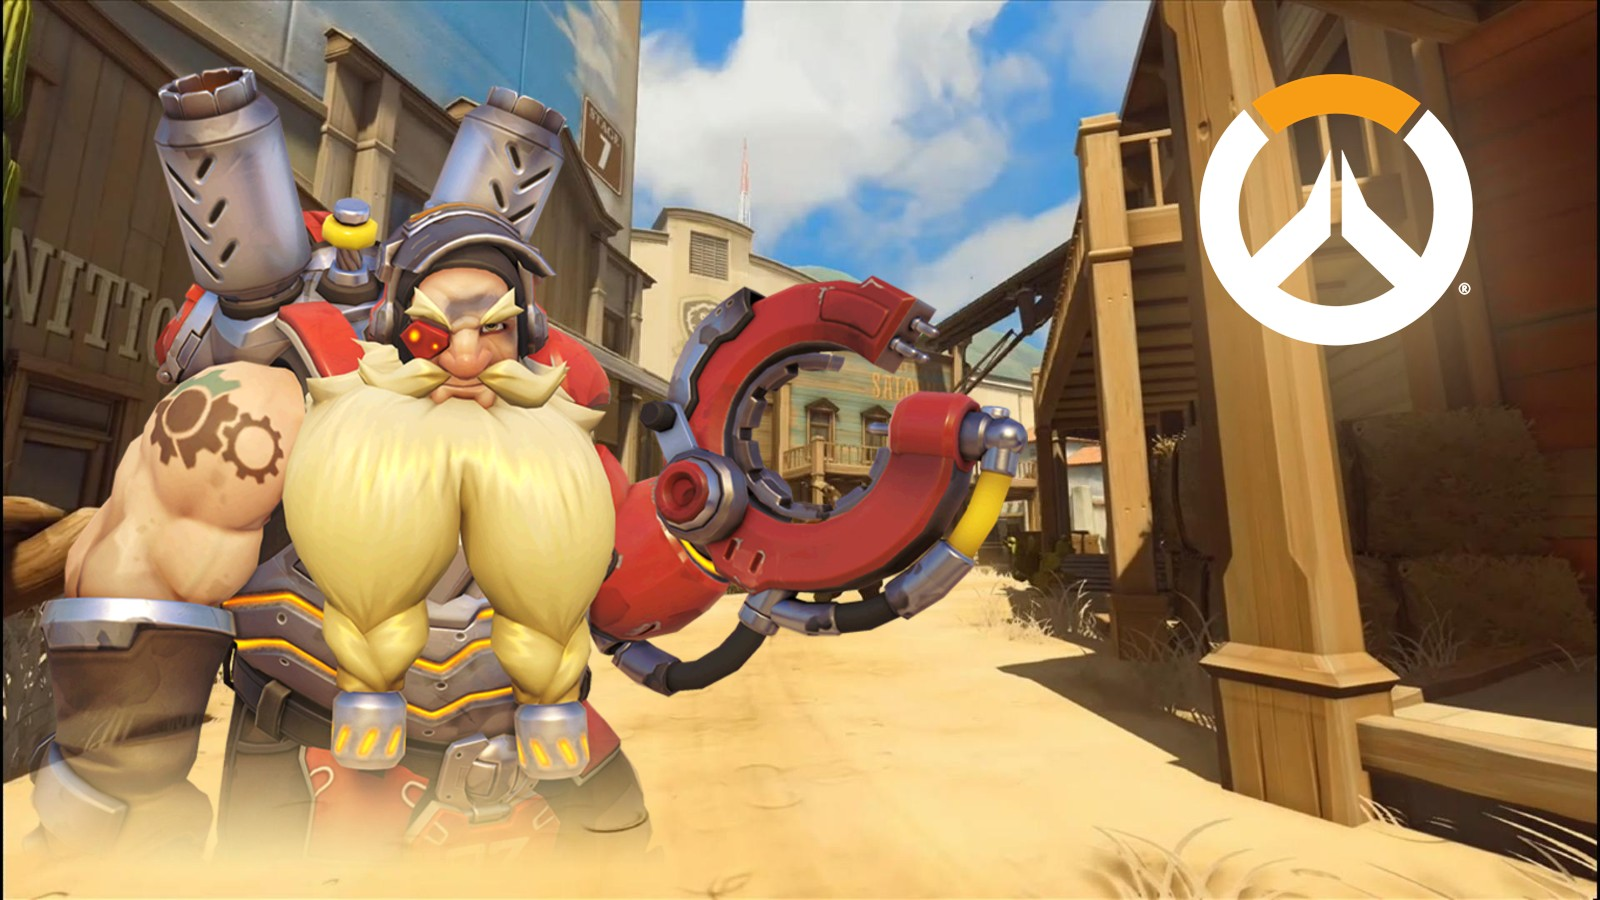 Torbjorn Glitch Overwatch Hollywood Western Set